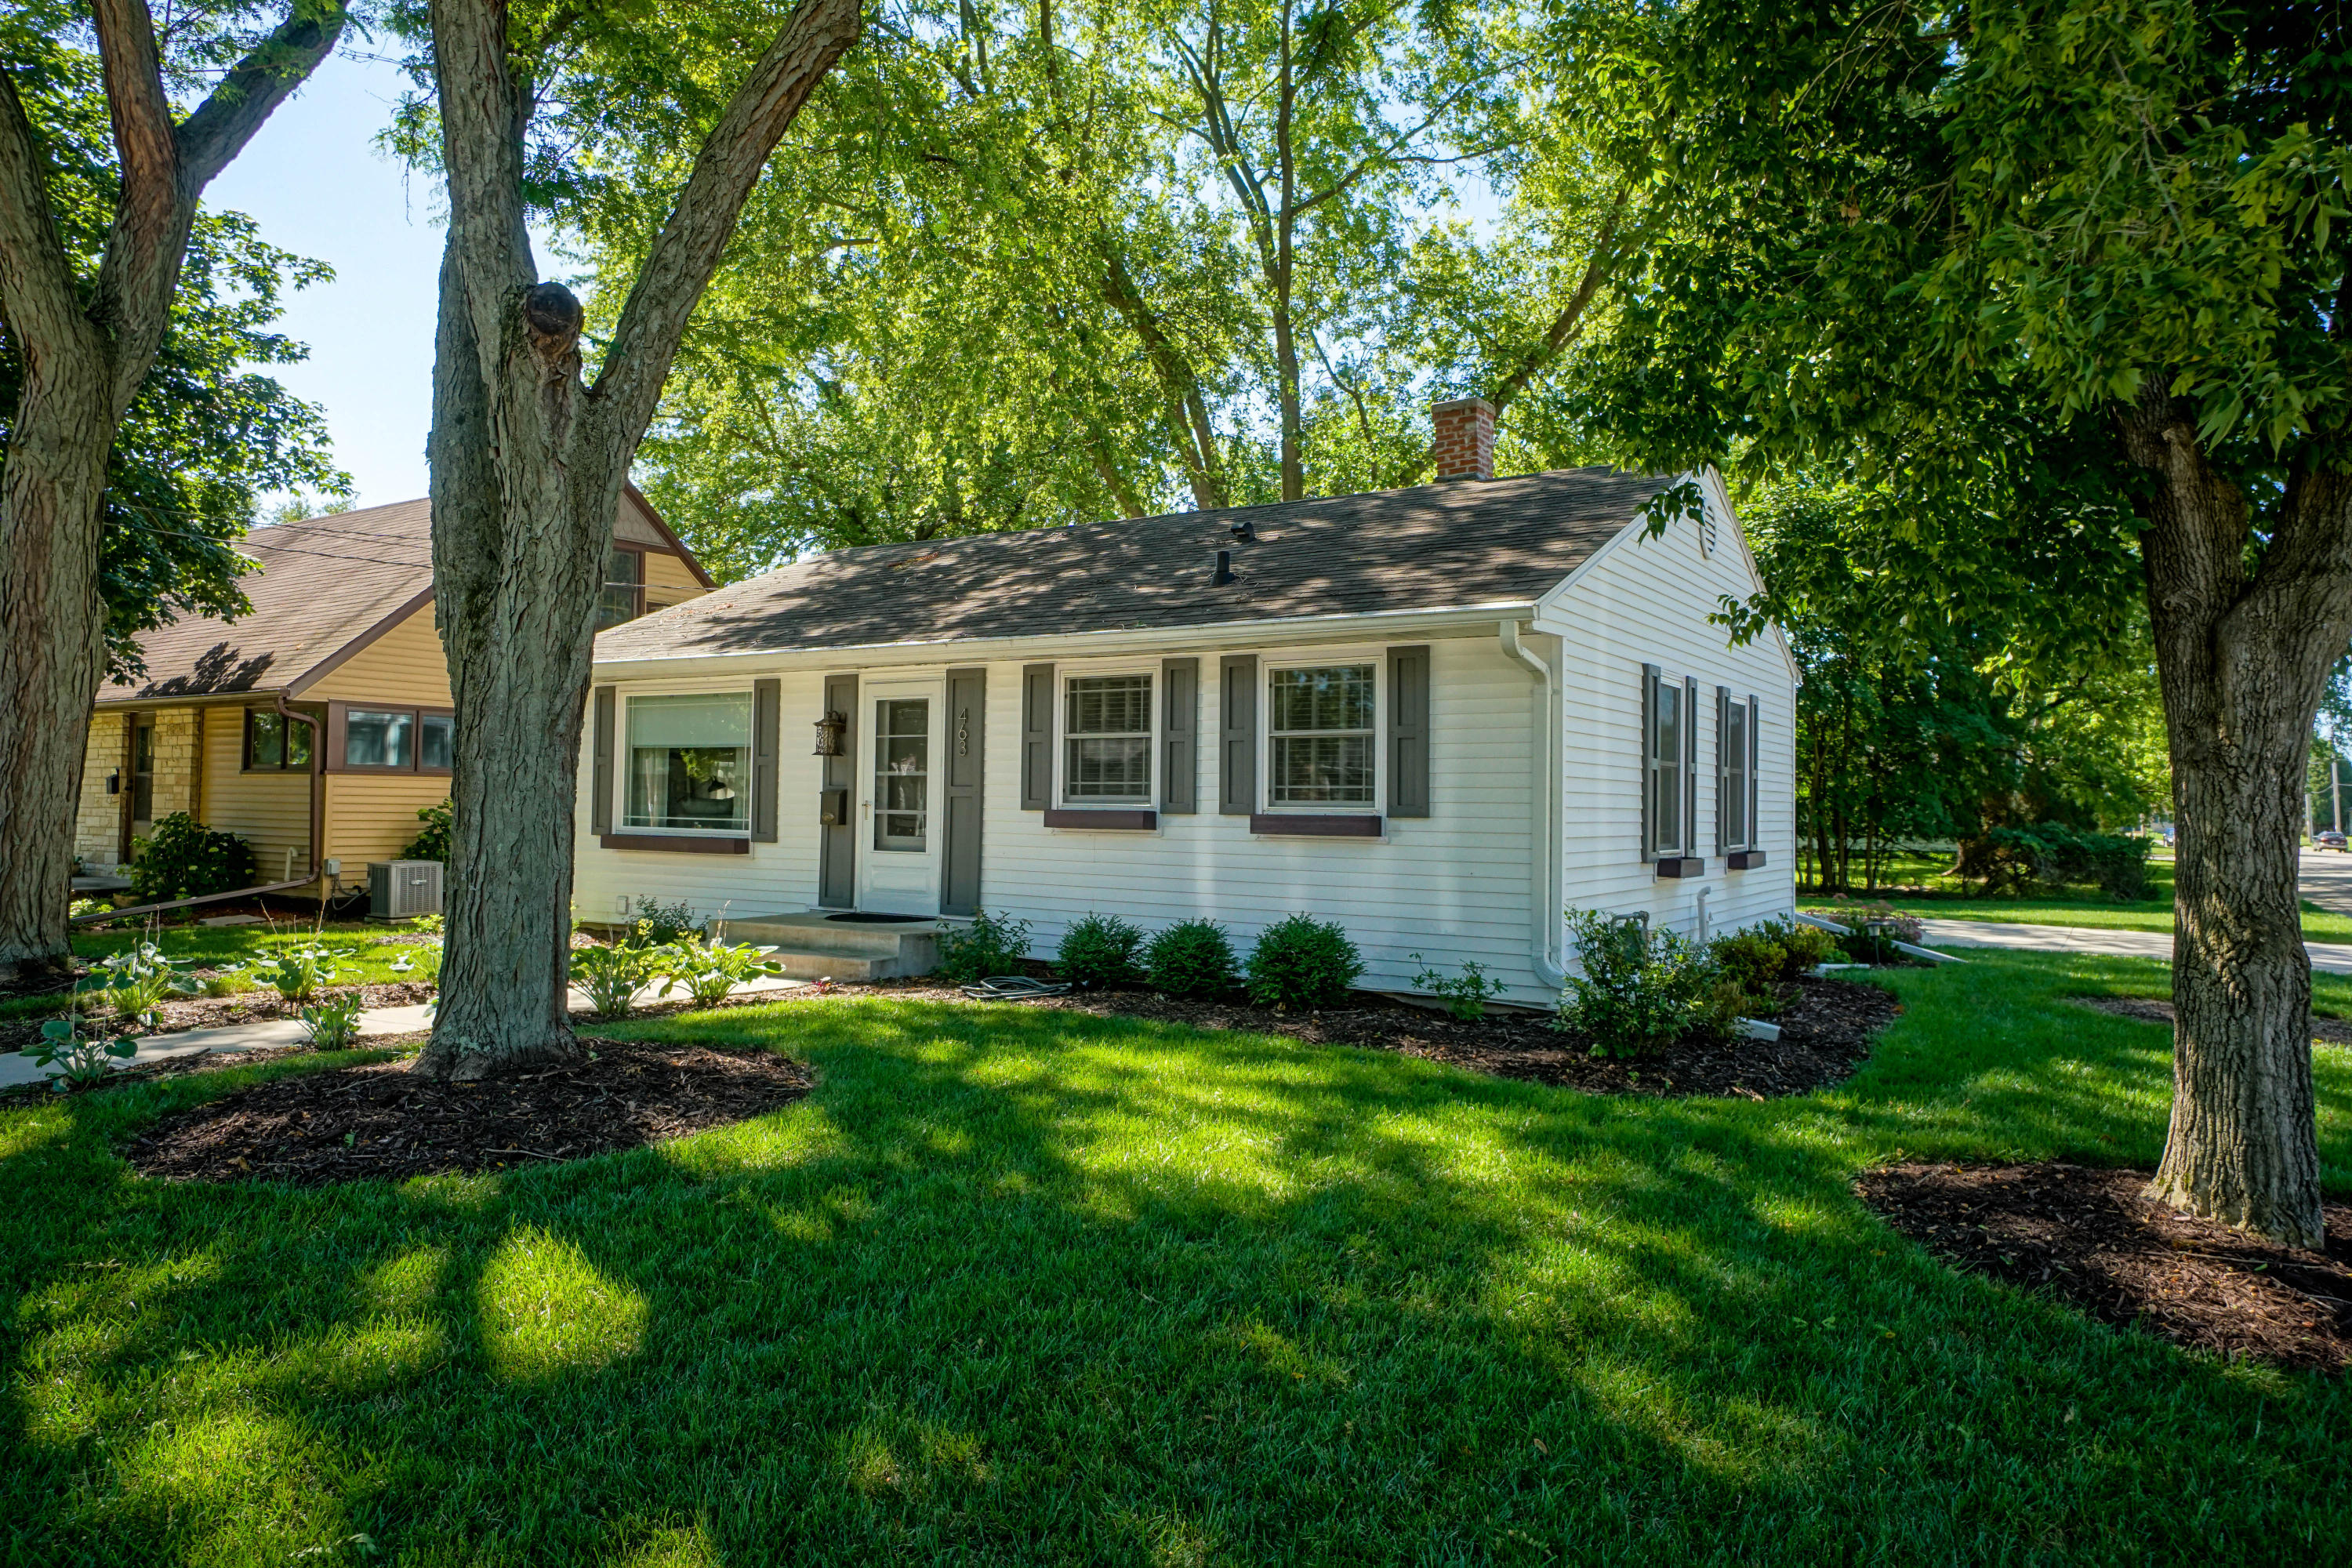 463 5th St, Oconomowoc, Wisconsin 53066, 3 Bedrooms Bedrooms, 7 Rooms Rooms,2 BathroomsBathrooms,Single-Family,For Sale,5th St,1700833